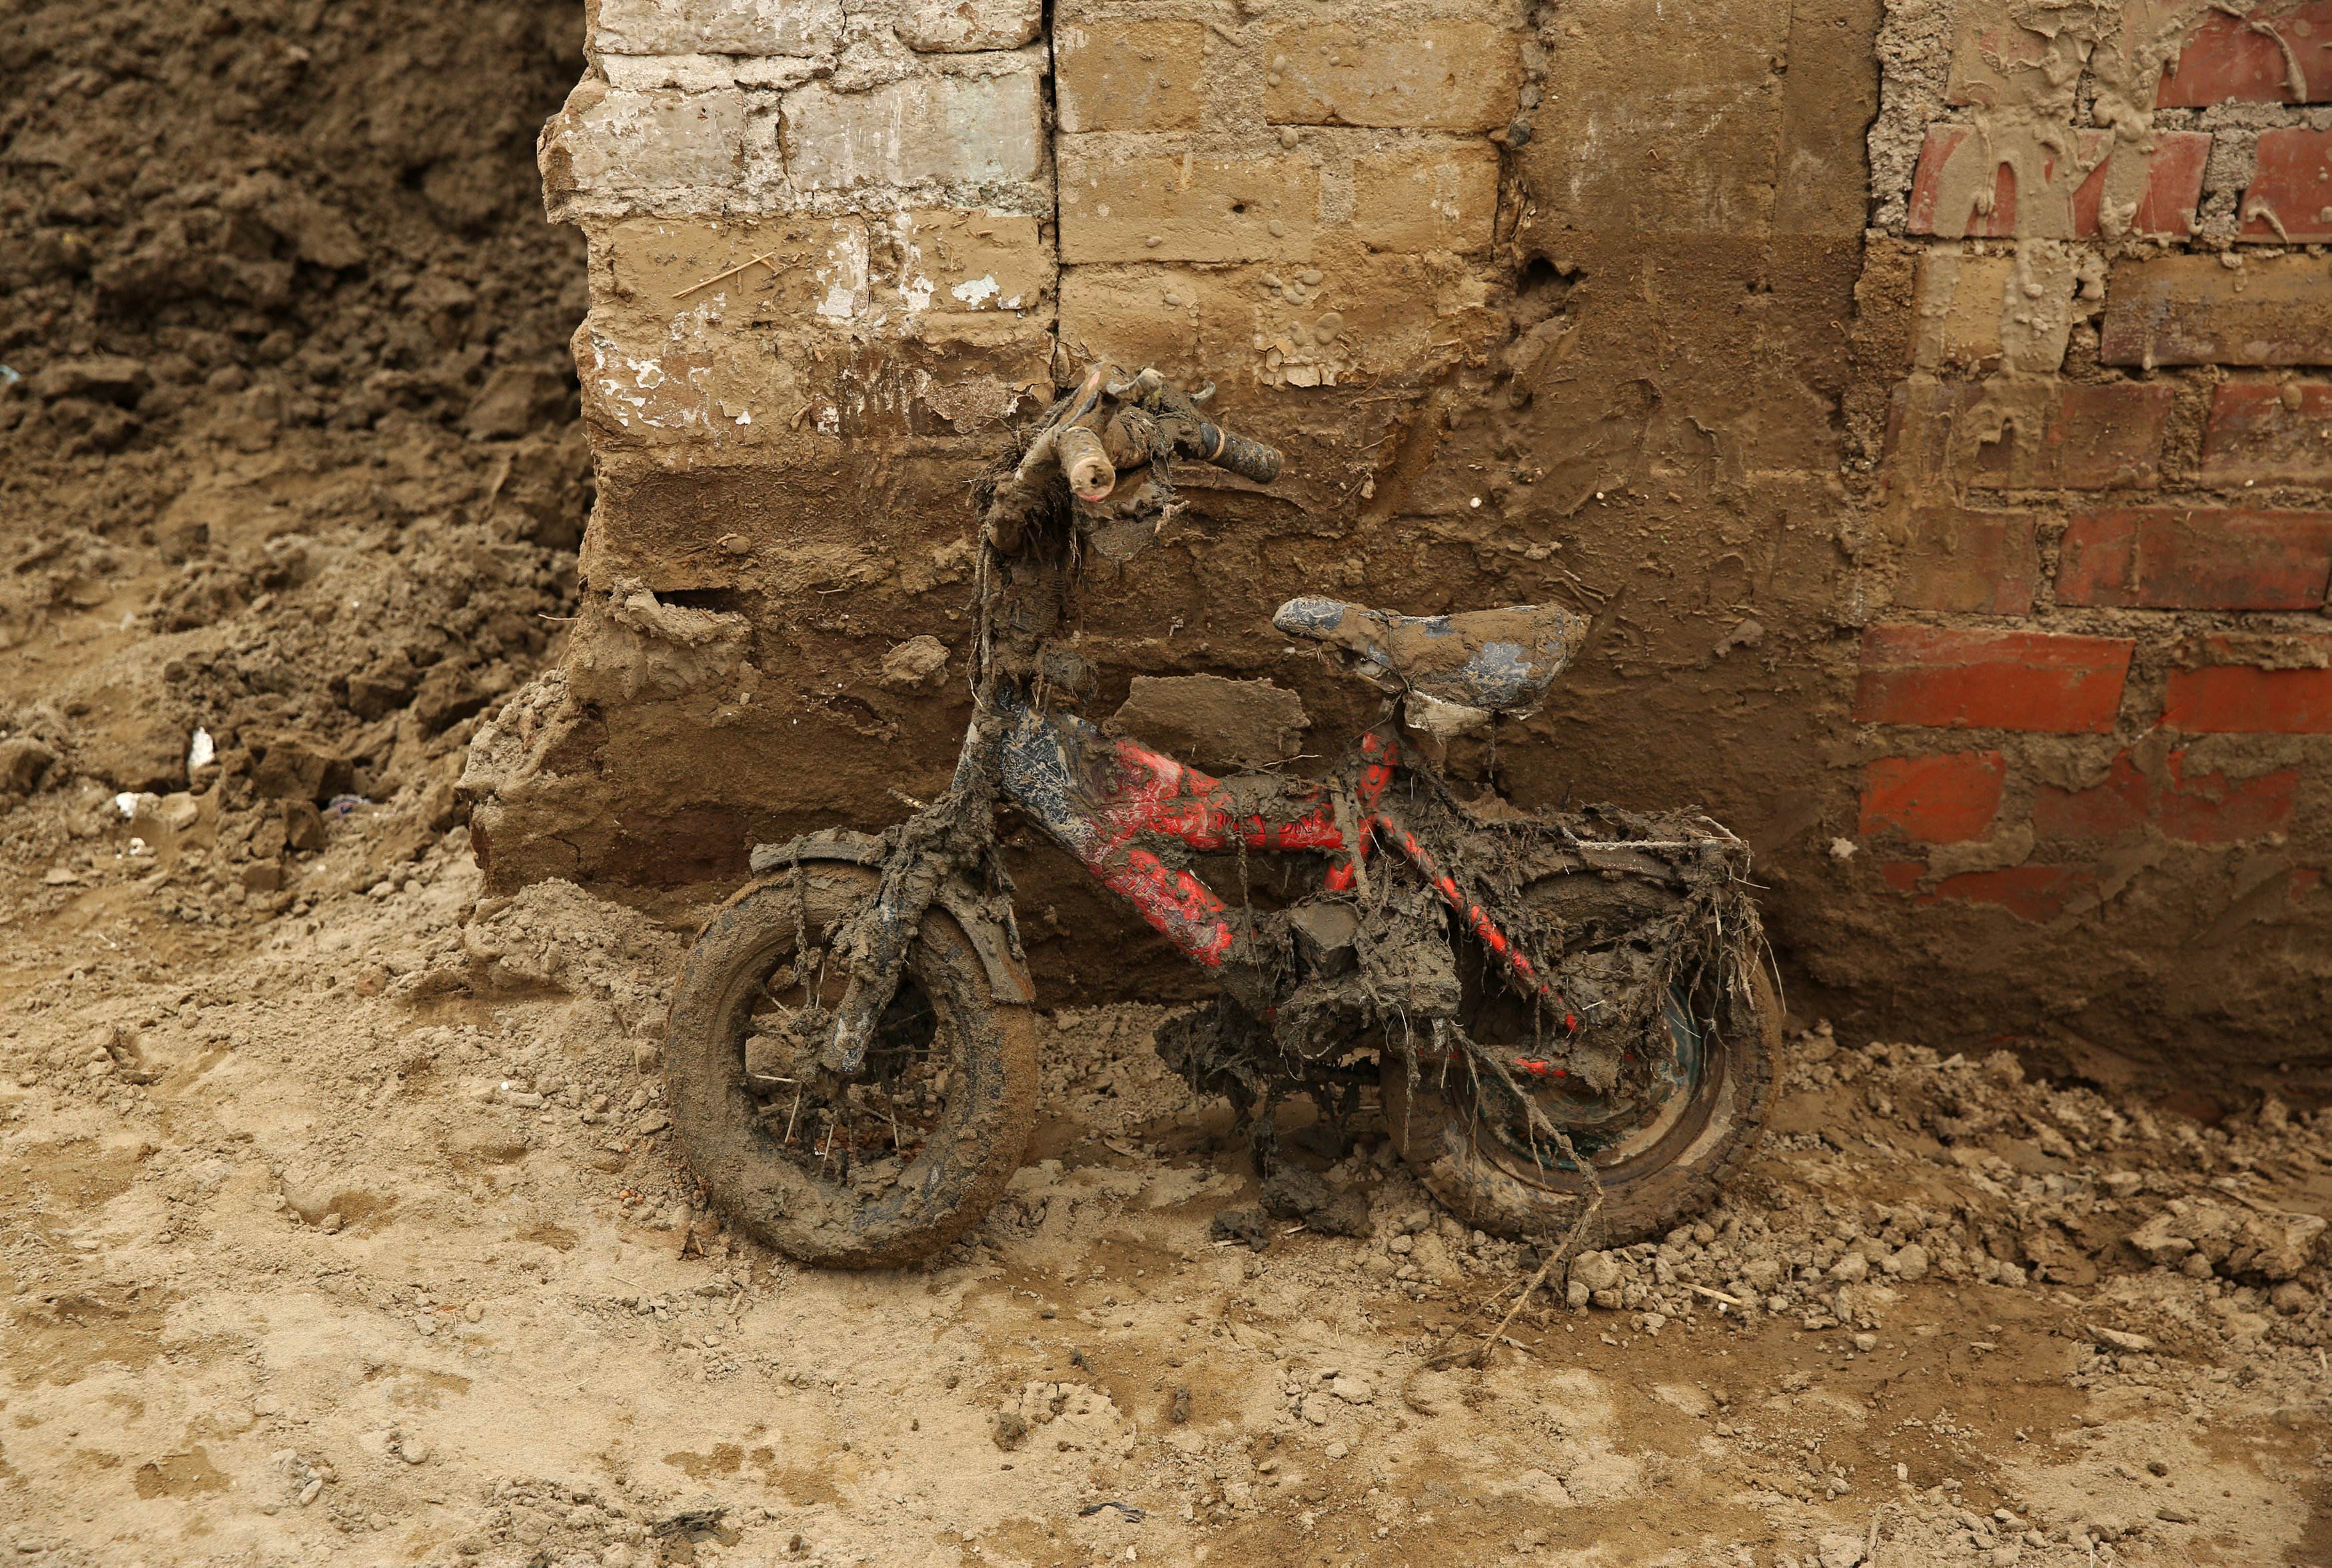 A children's bike leans against a wall covered in mud after rivers breached their banks due to torrential rains, causing flooding and widespread destruction in Carapongo Huachipa, Lima, Peru,